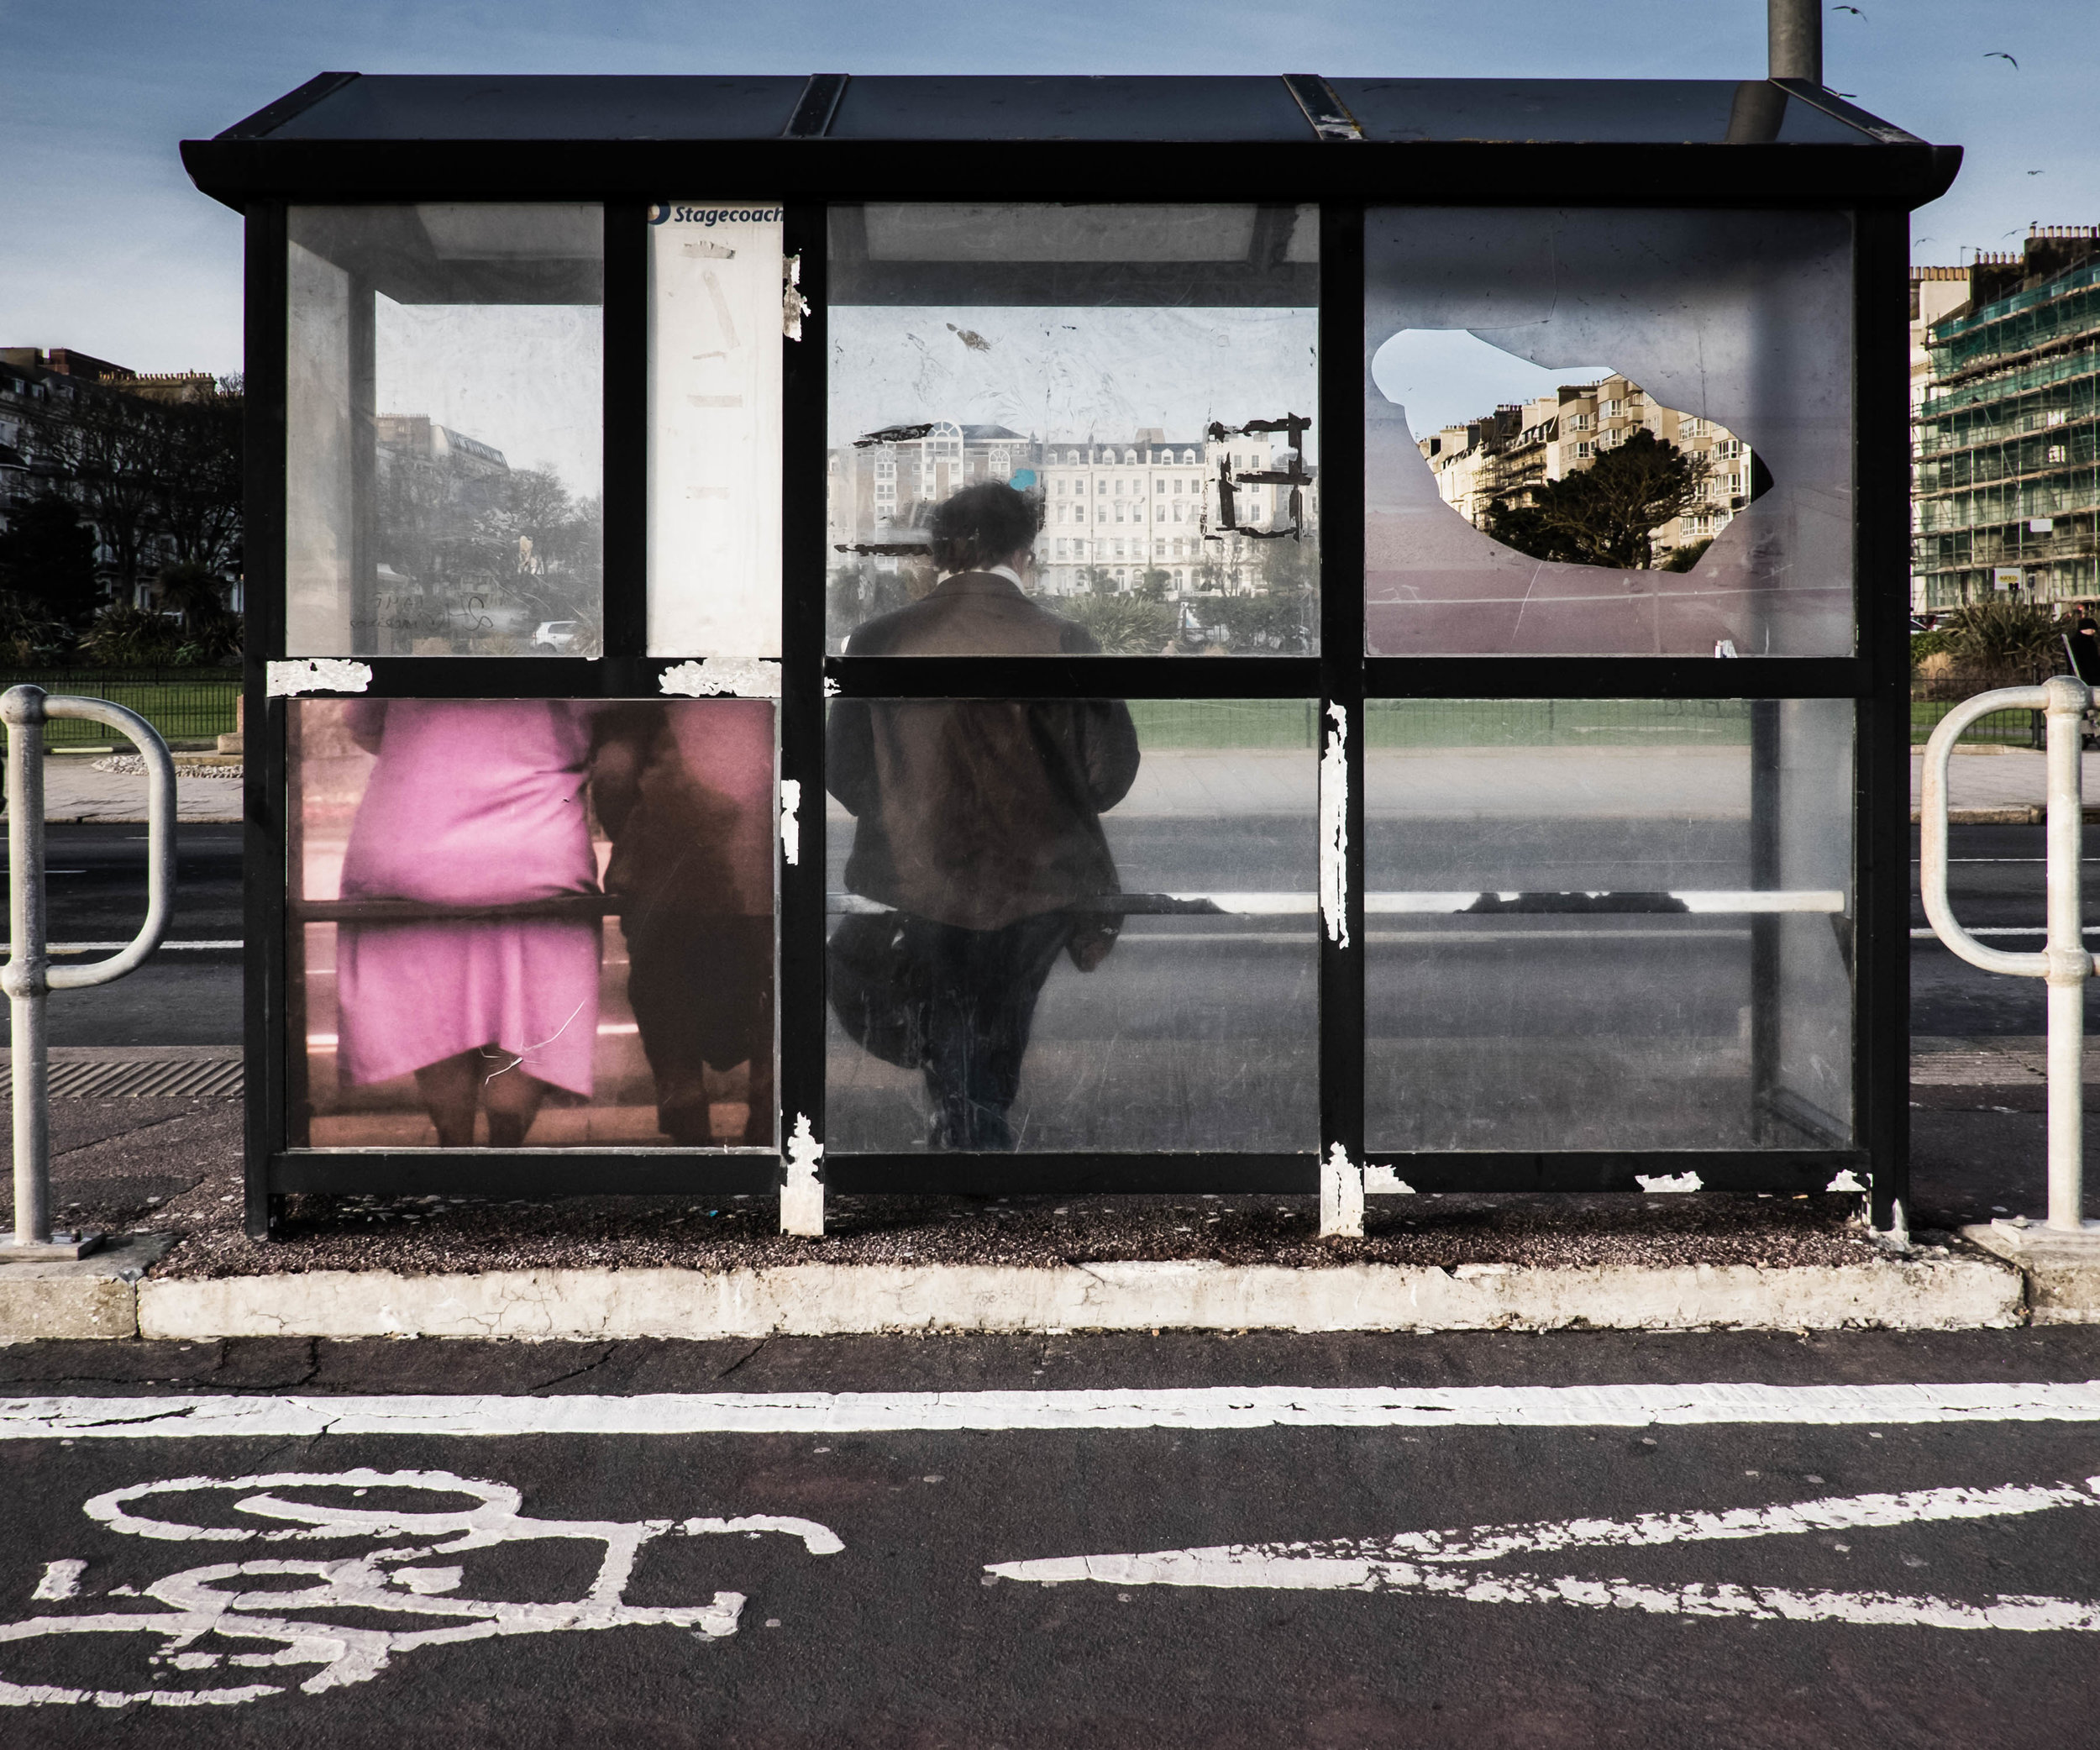 For more shelter images have a look at my street gallery page.